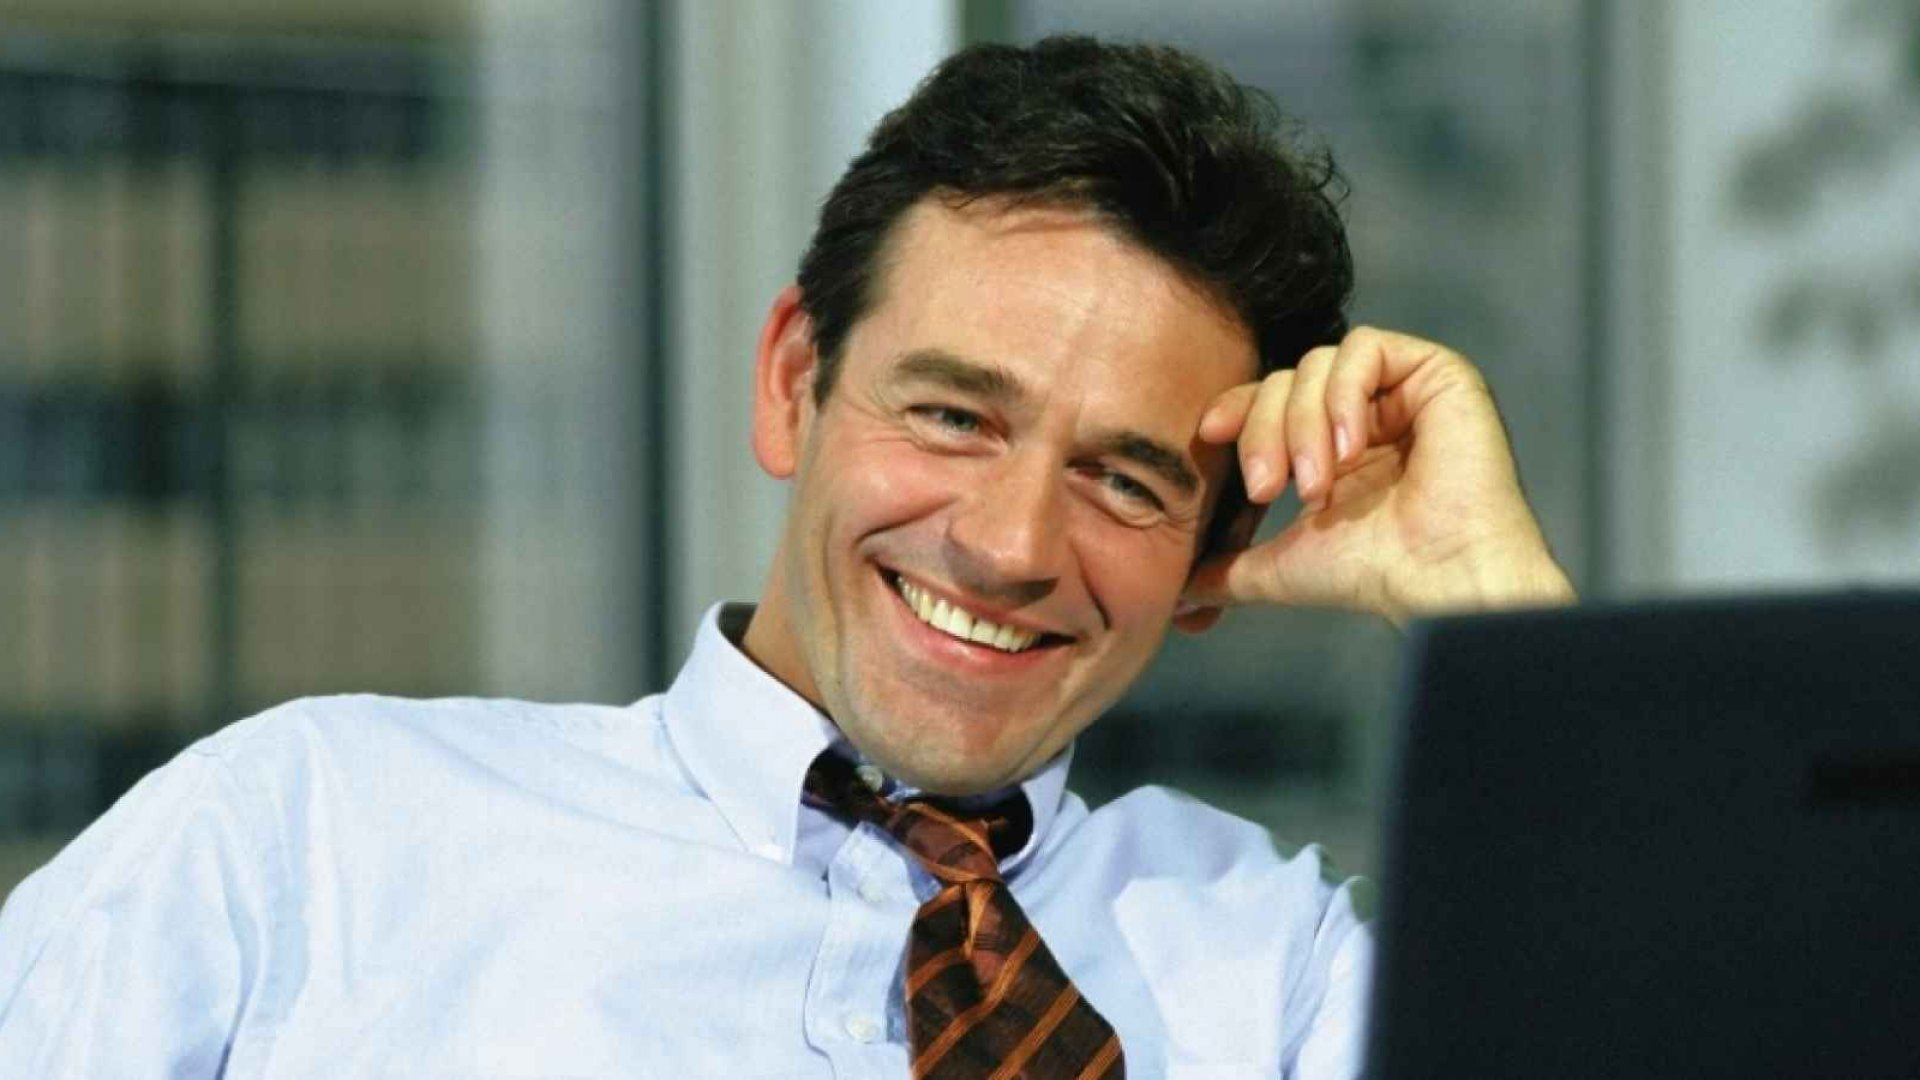 3 Remarkably Effective Habits for a Happier, More Successful You